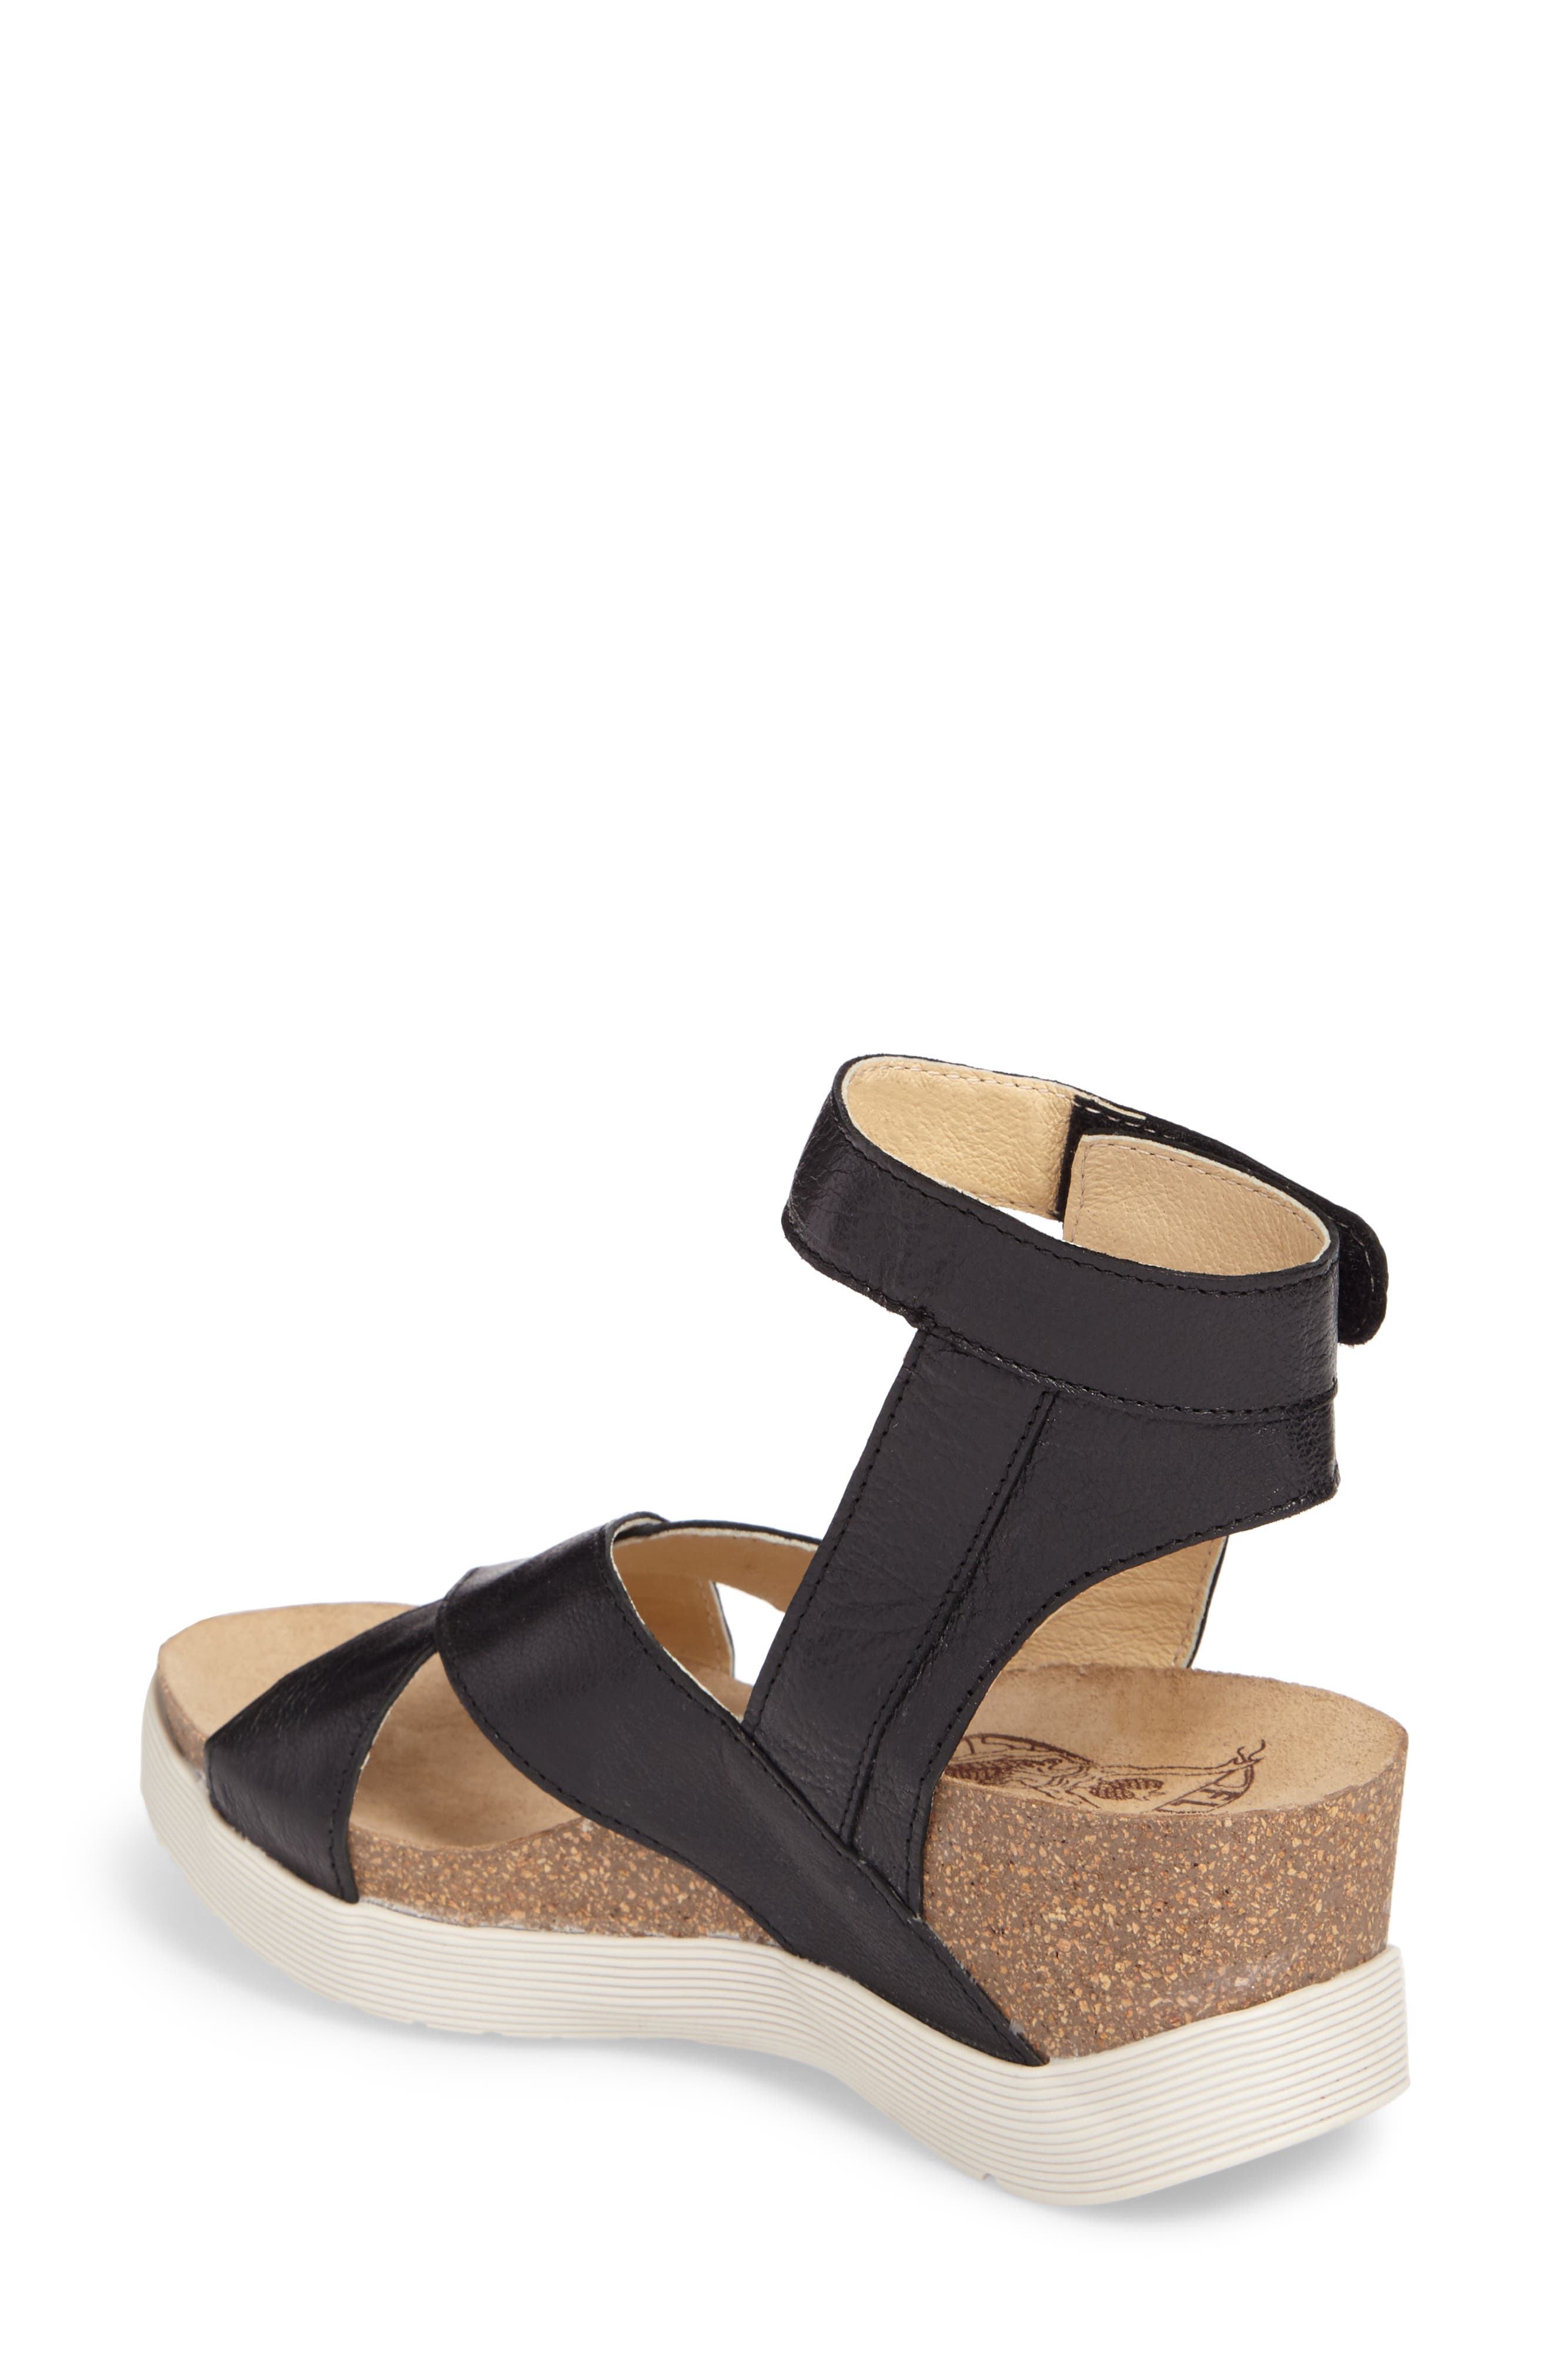 Weel Nubuck Leather Platform Sandal,                             Alternate thumbnail 2, color,                             BLACK MOUSSE LEATHER